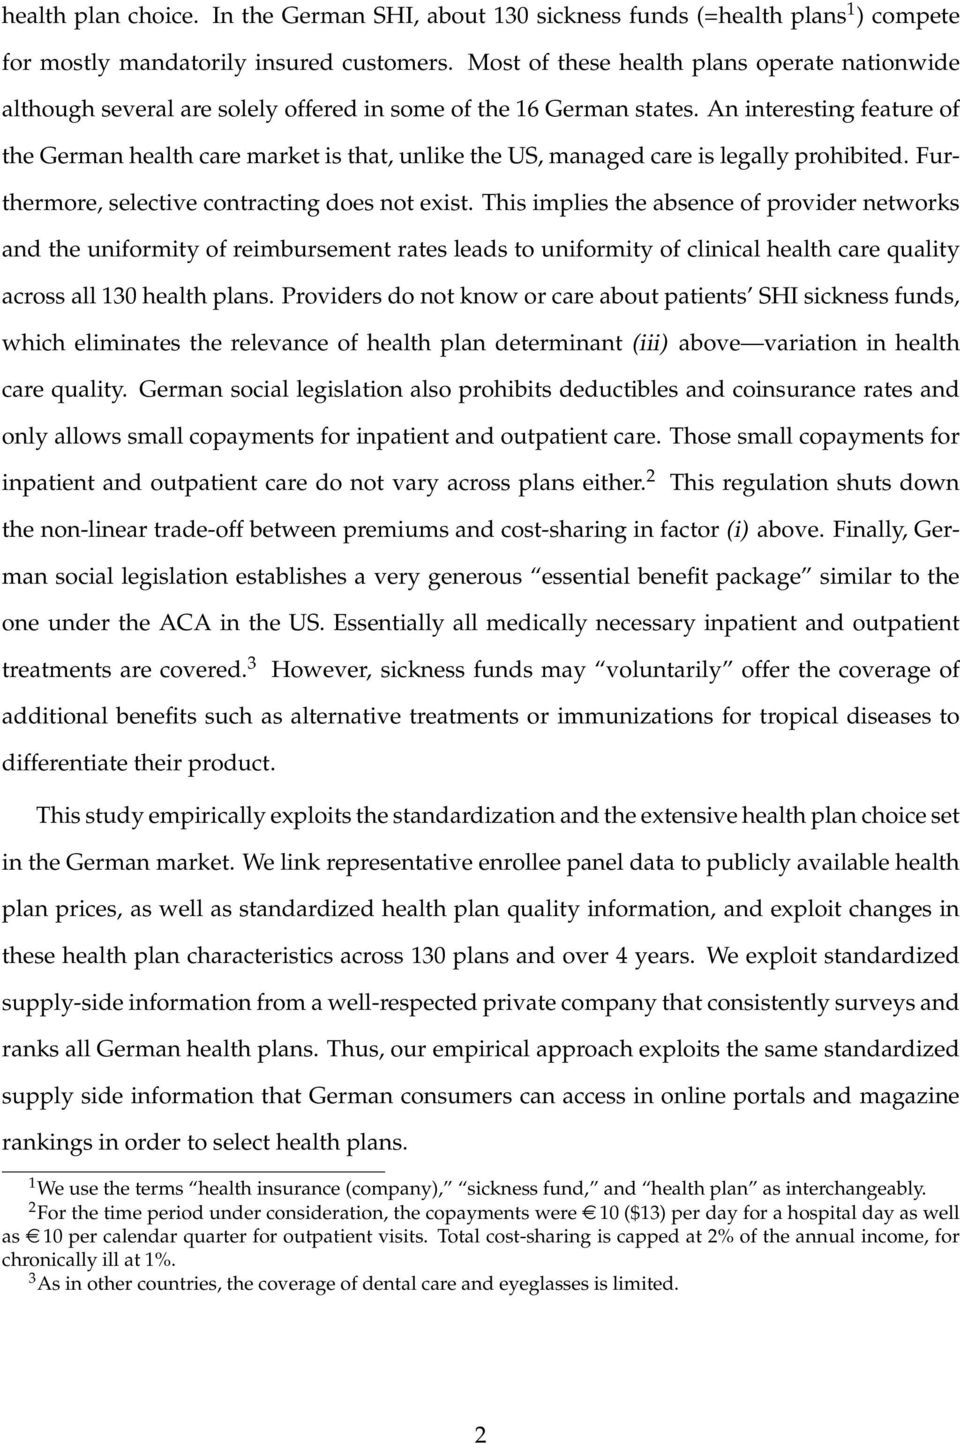 An interesting feature of the German health care market is that, unlike the US, managed care is legally prohibited. Furthermore, selective contracting does not exist.